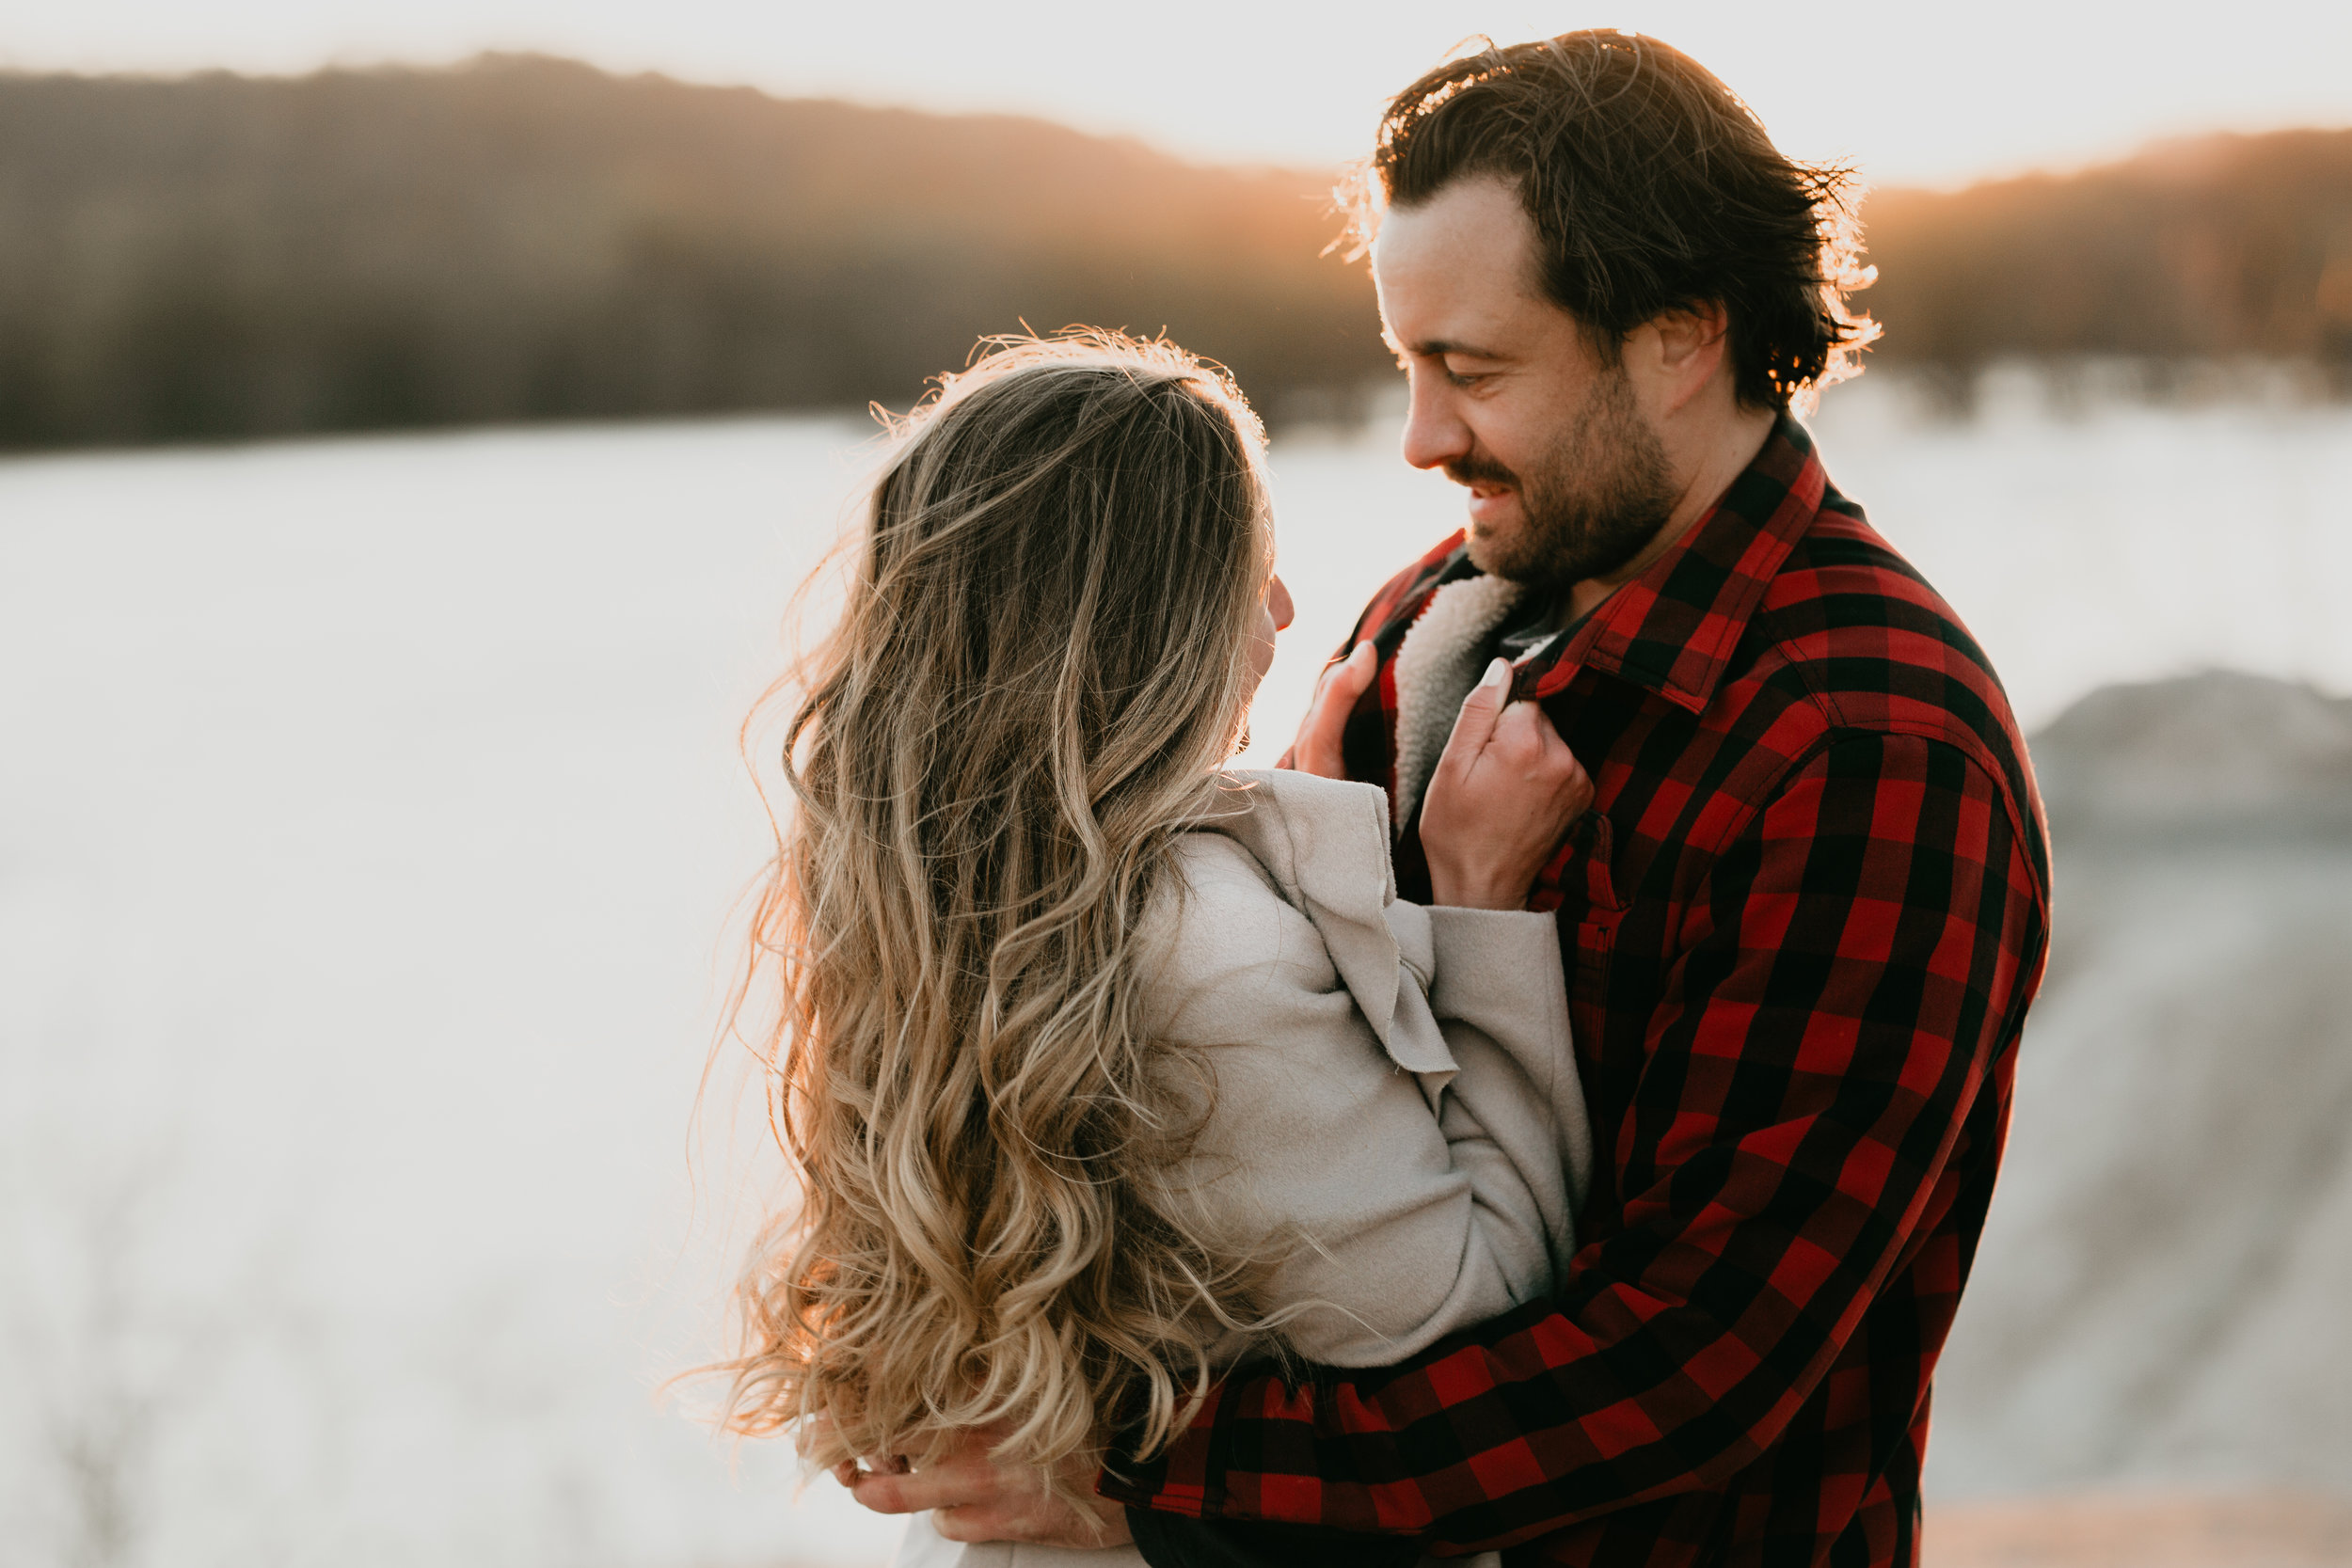 nicole-daacke-photography-white-cliffs-of-conoy-in-lancaster-pa-pennsylvania-adventure-session-adventure-elopement-photographer-engagement session-in-lancaster-pa-photographer-golden-sunset-winter-solstice-wedding-riverside-elopement-5340.jpg